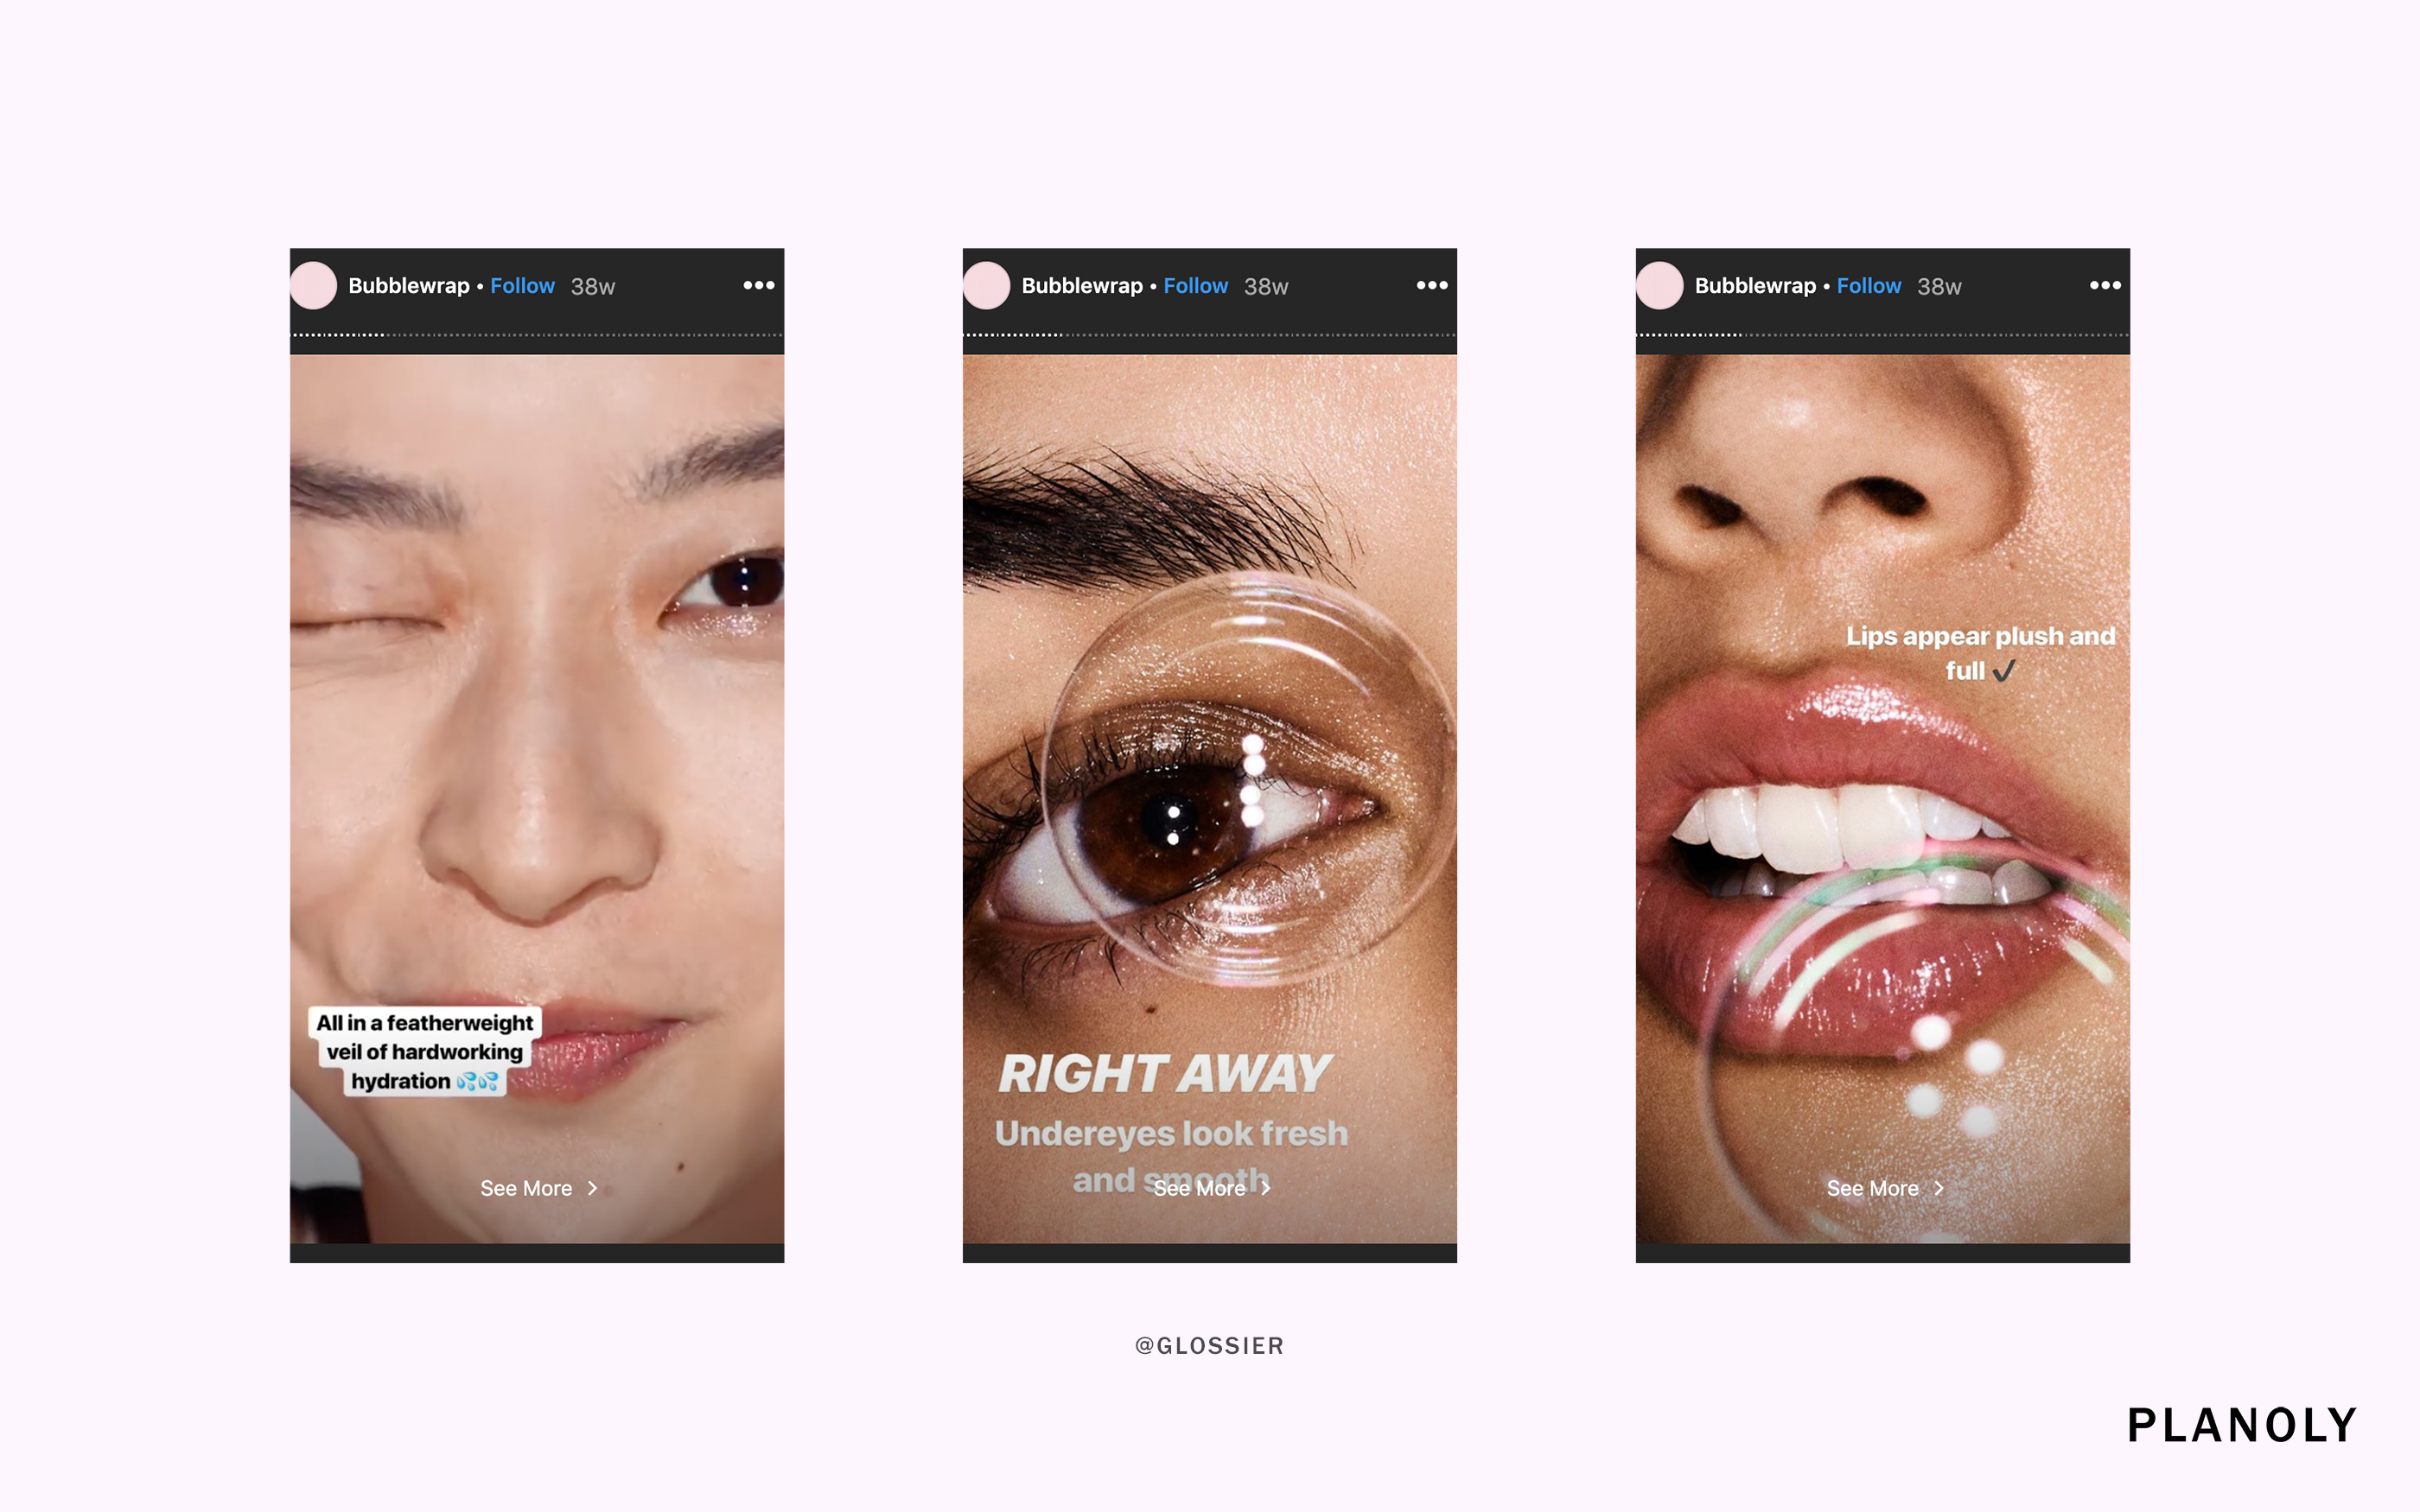 How to Use Instagram Stories to Grow Your Brand